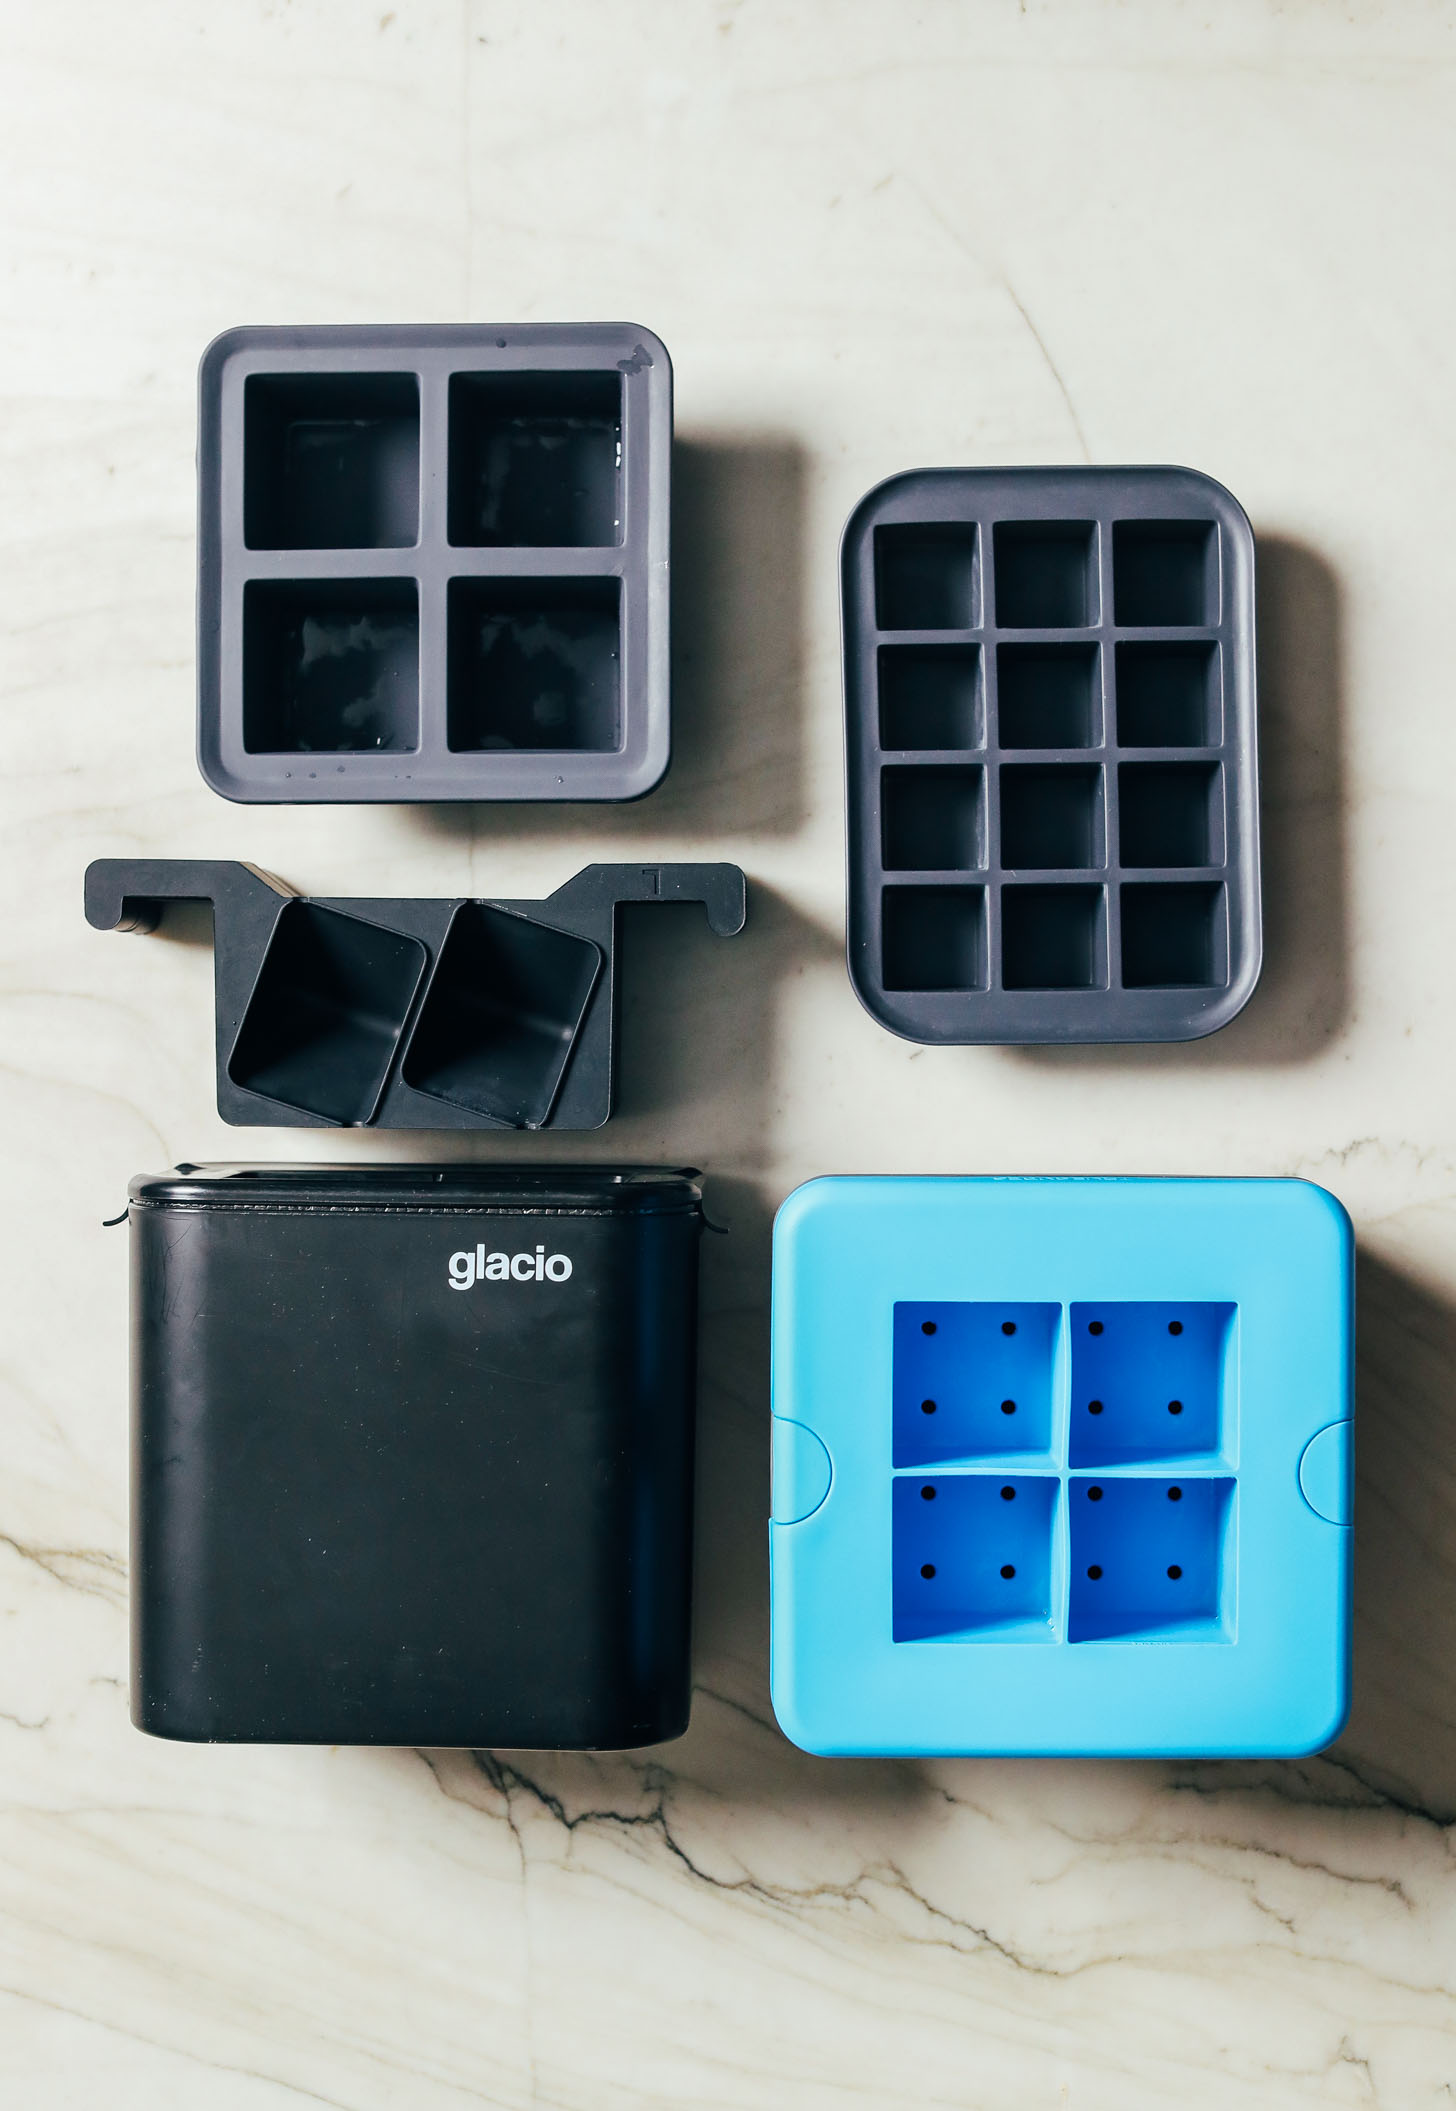 Types of ice cube trays for making cocktails